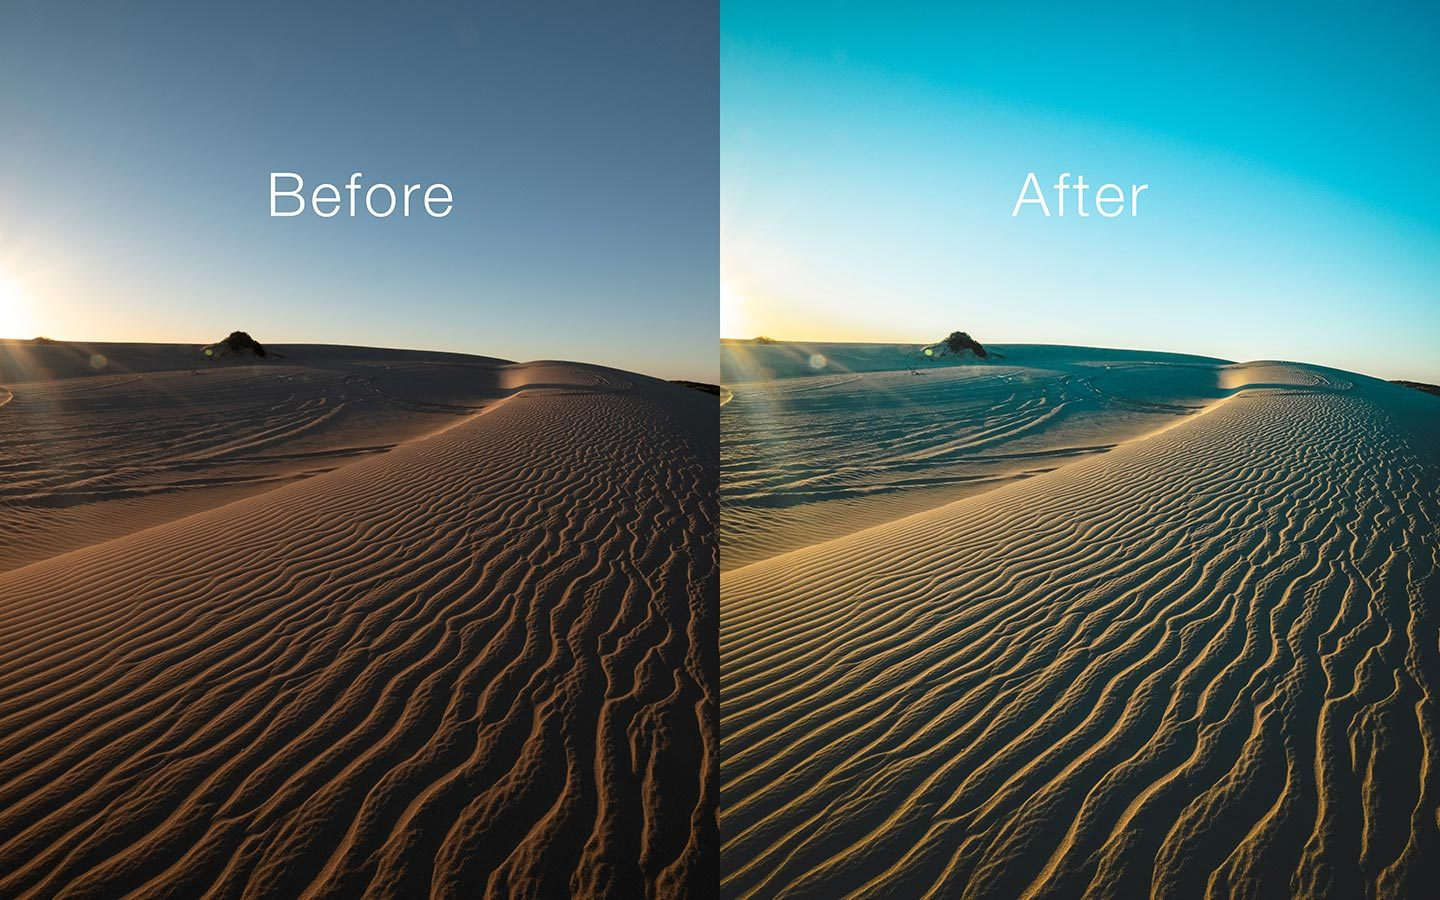 This is a comparison of the before and after of one of my photos. The before image shows an unedited raw image and the second one has been edited using a Lightroom mobile preset called Moscow Travel. Its one of the most powerful Lightroom mobile presets you can find online as a free download.